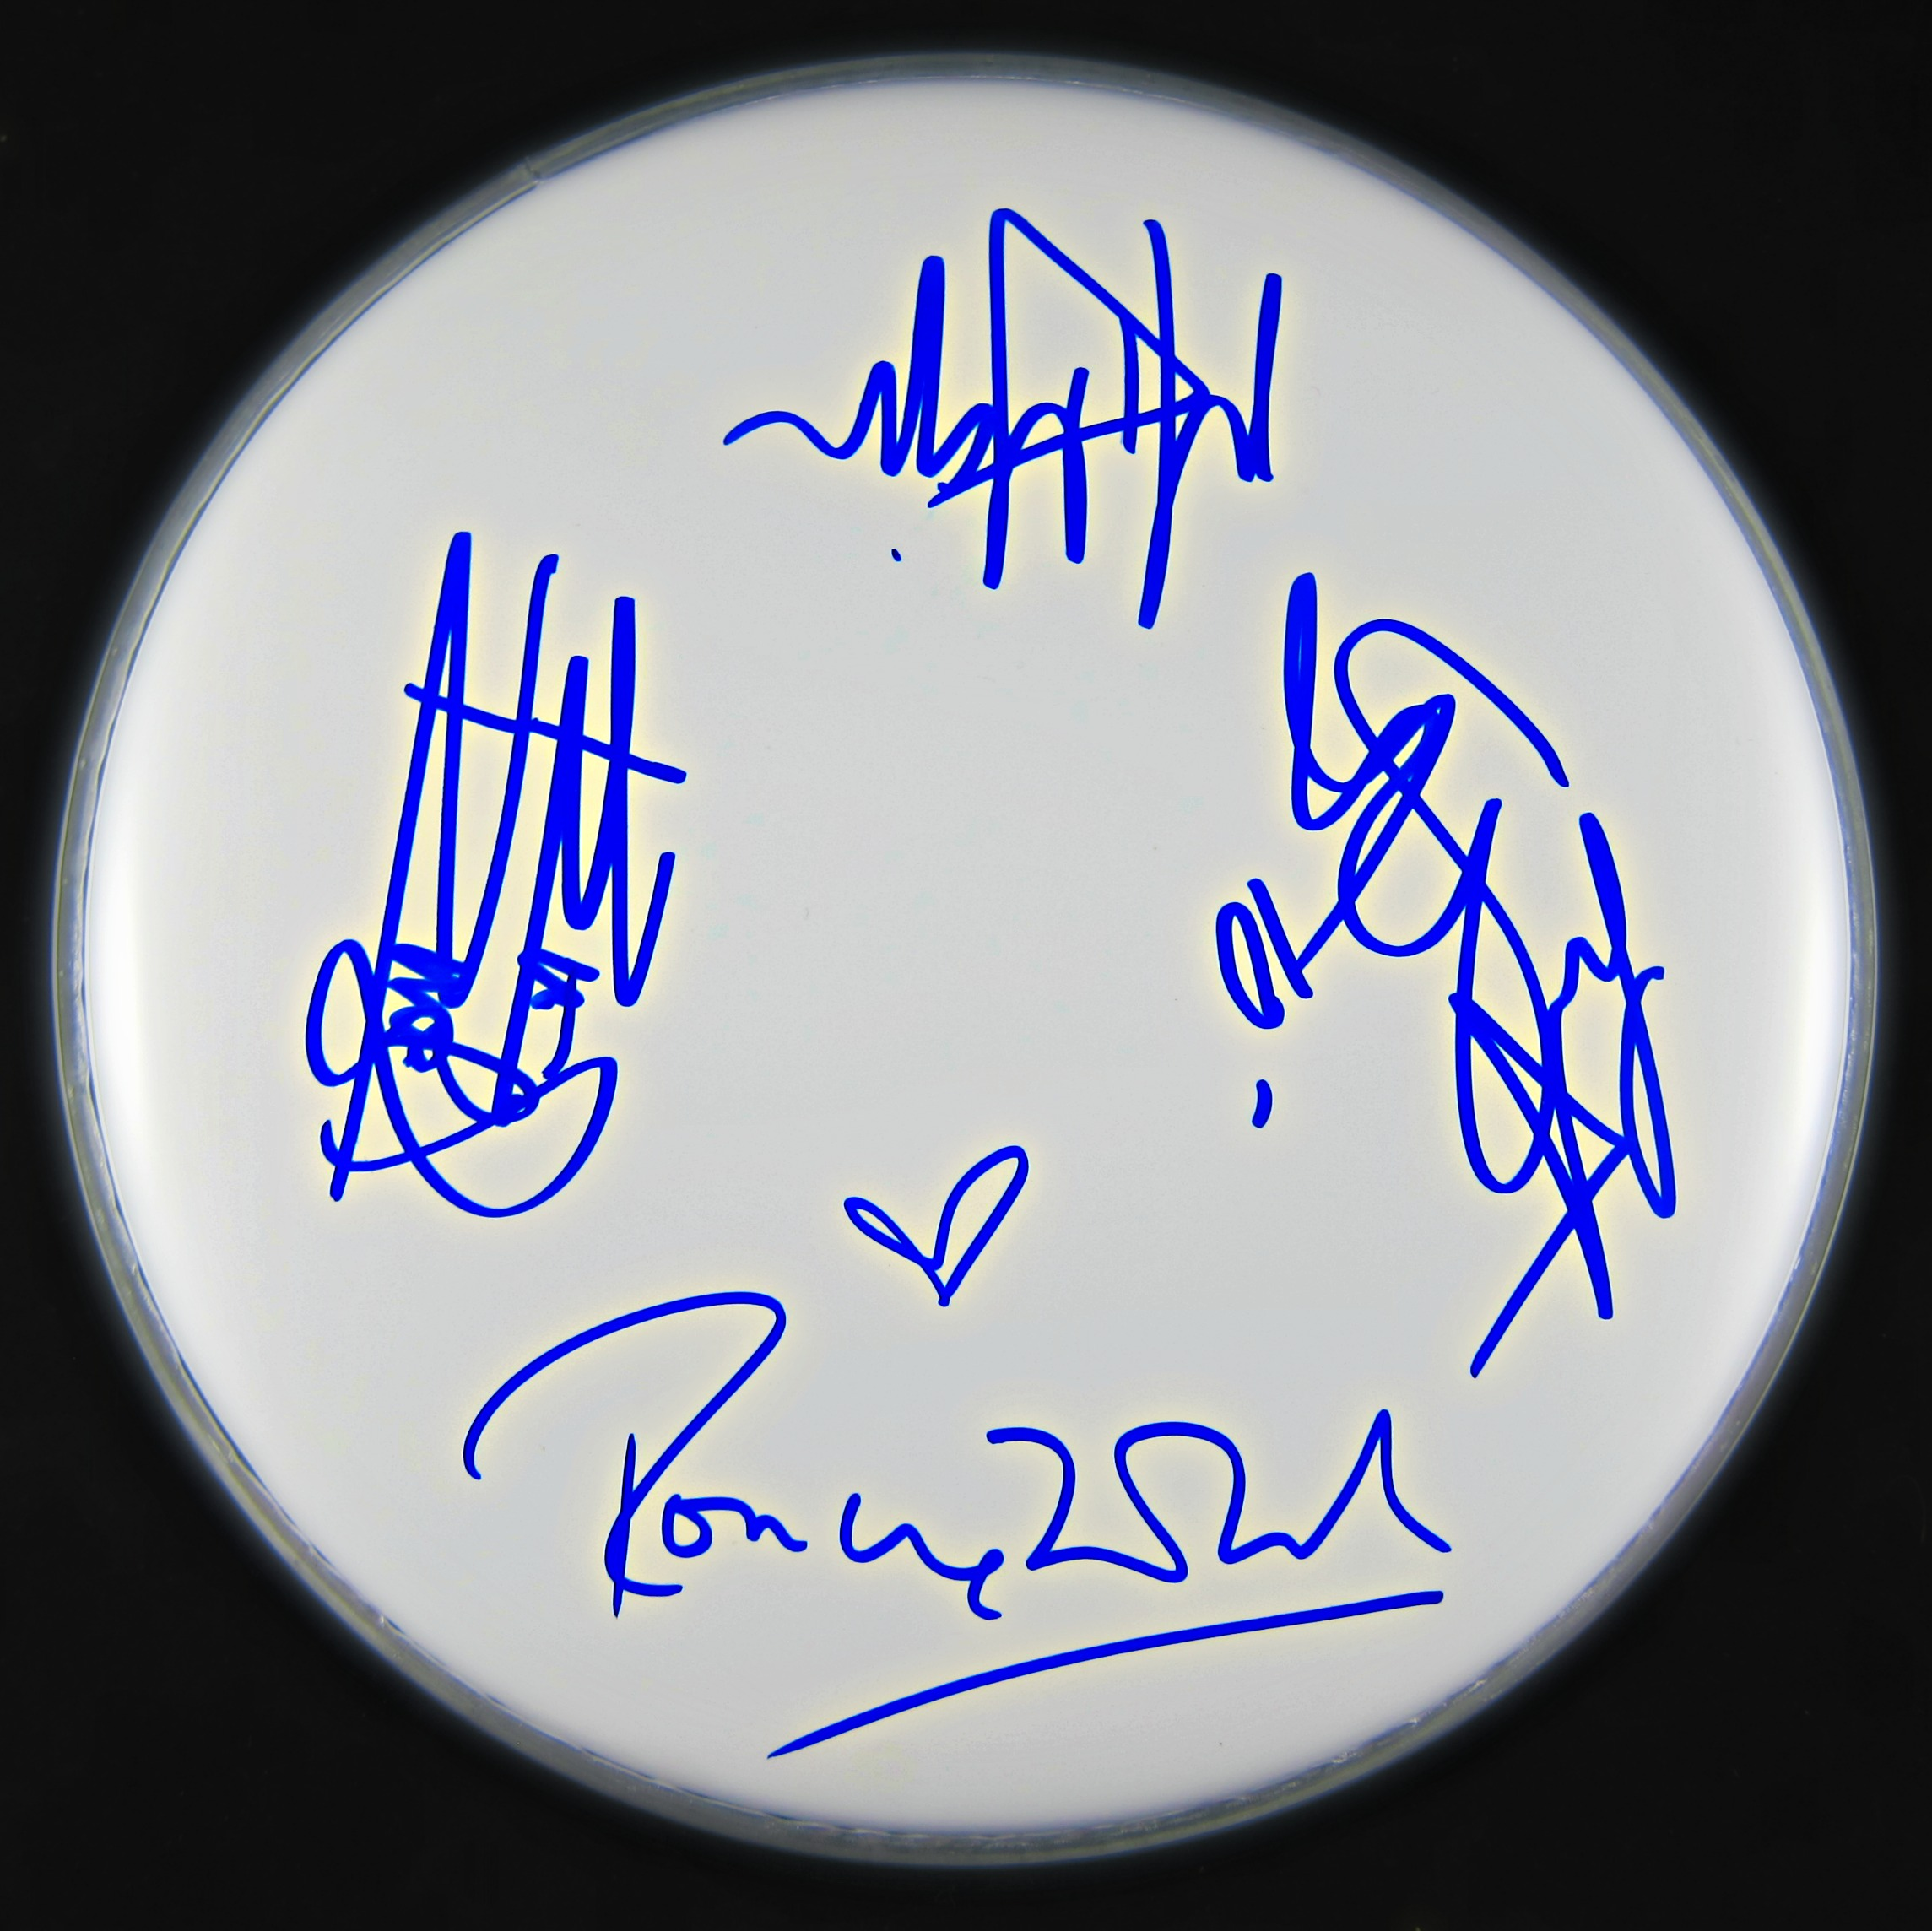 the rolling stones autographed band signed drumhead